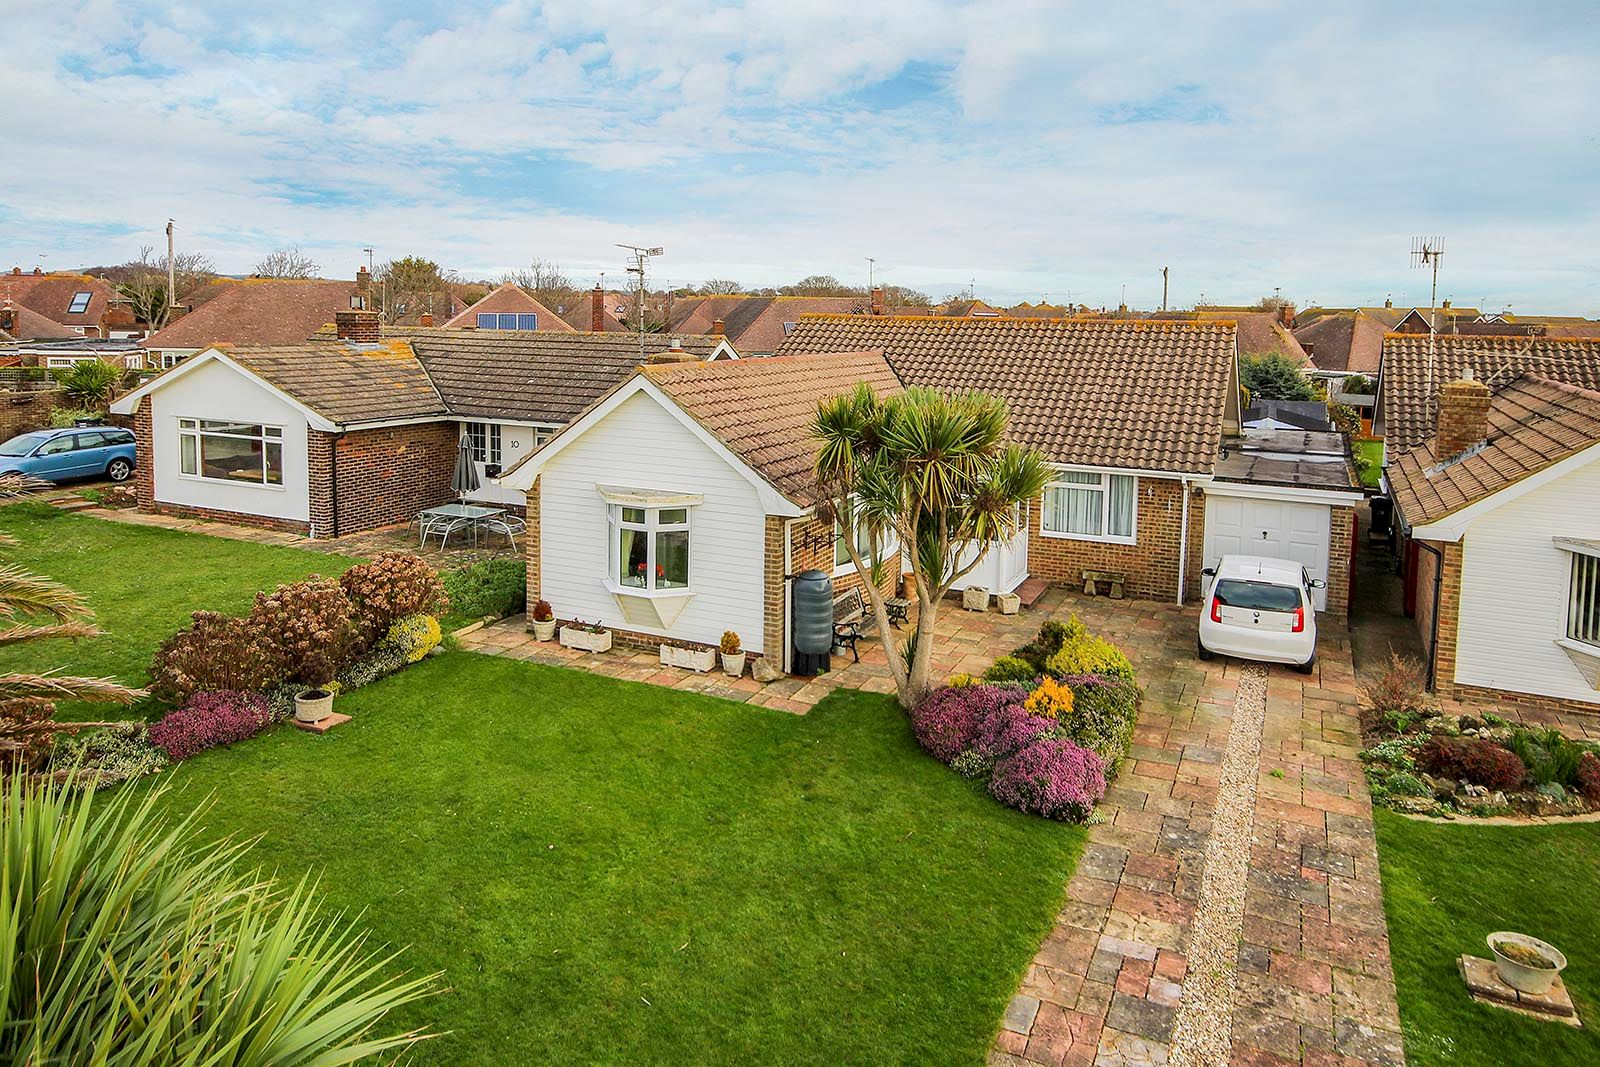 2 bed bungalow for sale in Banstead Close - Property Image 1